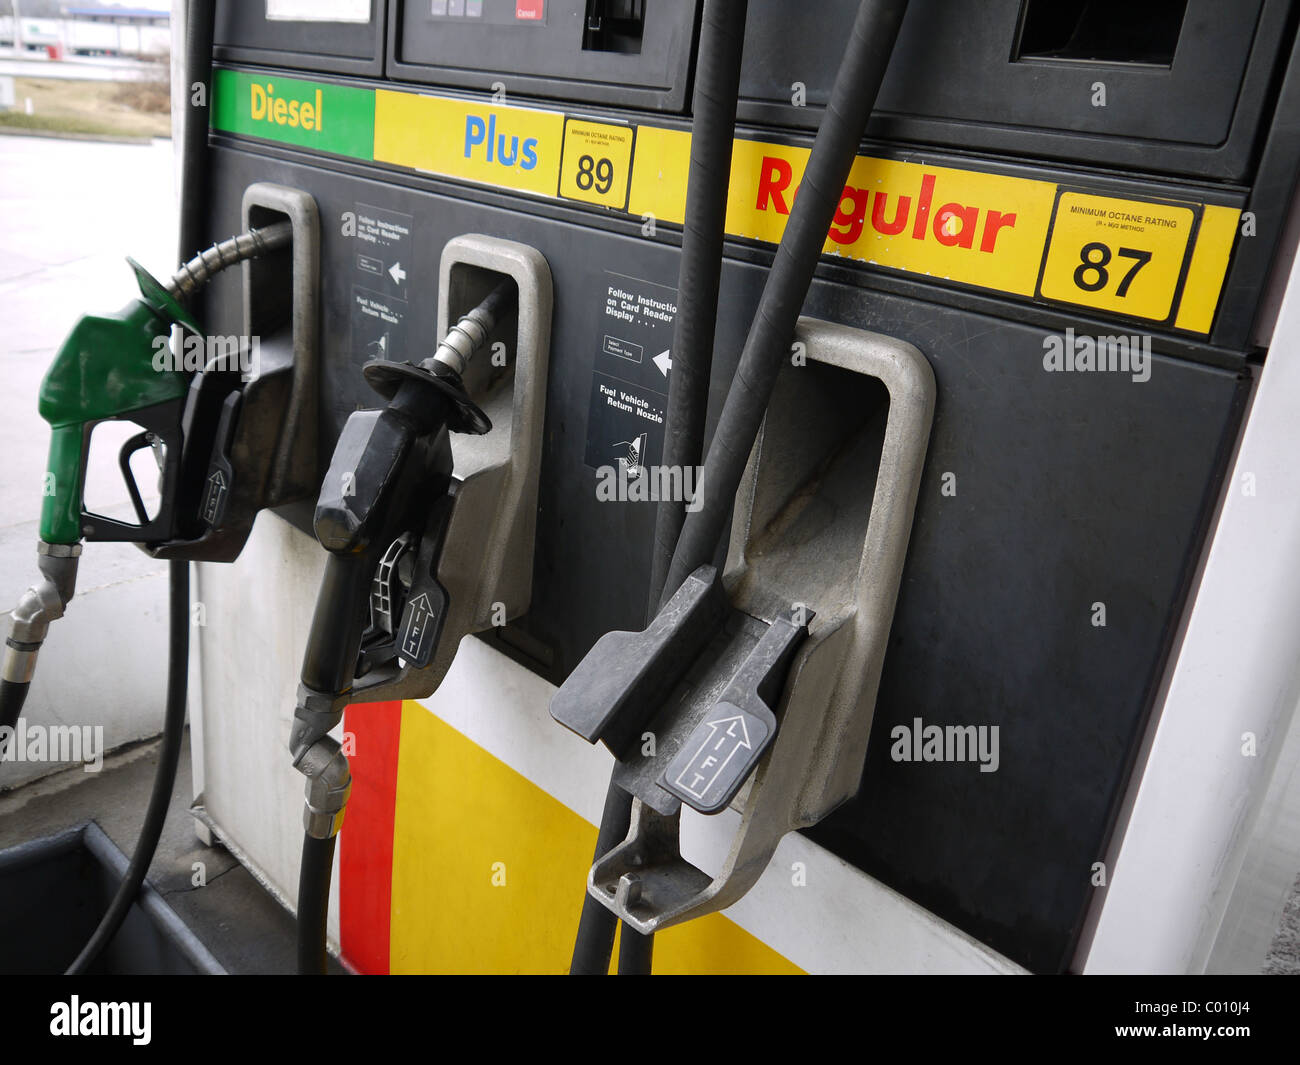 Close-up of gas pump nozzles at a gas station. - Stock Image